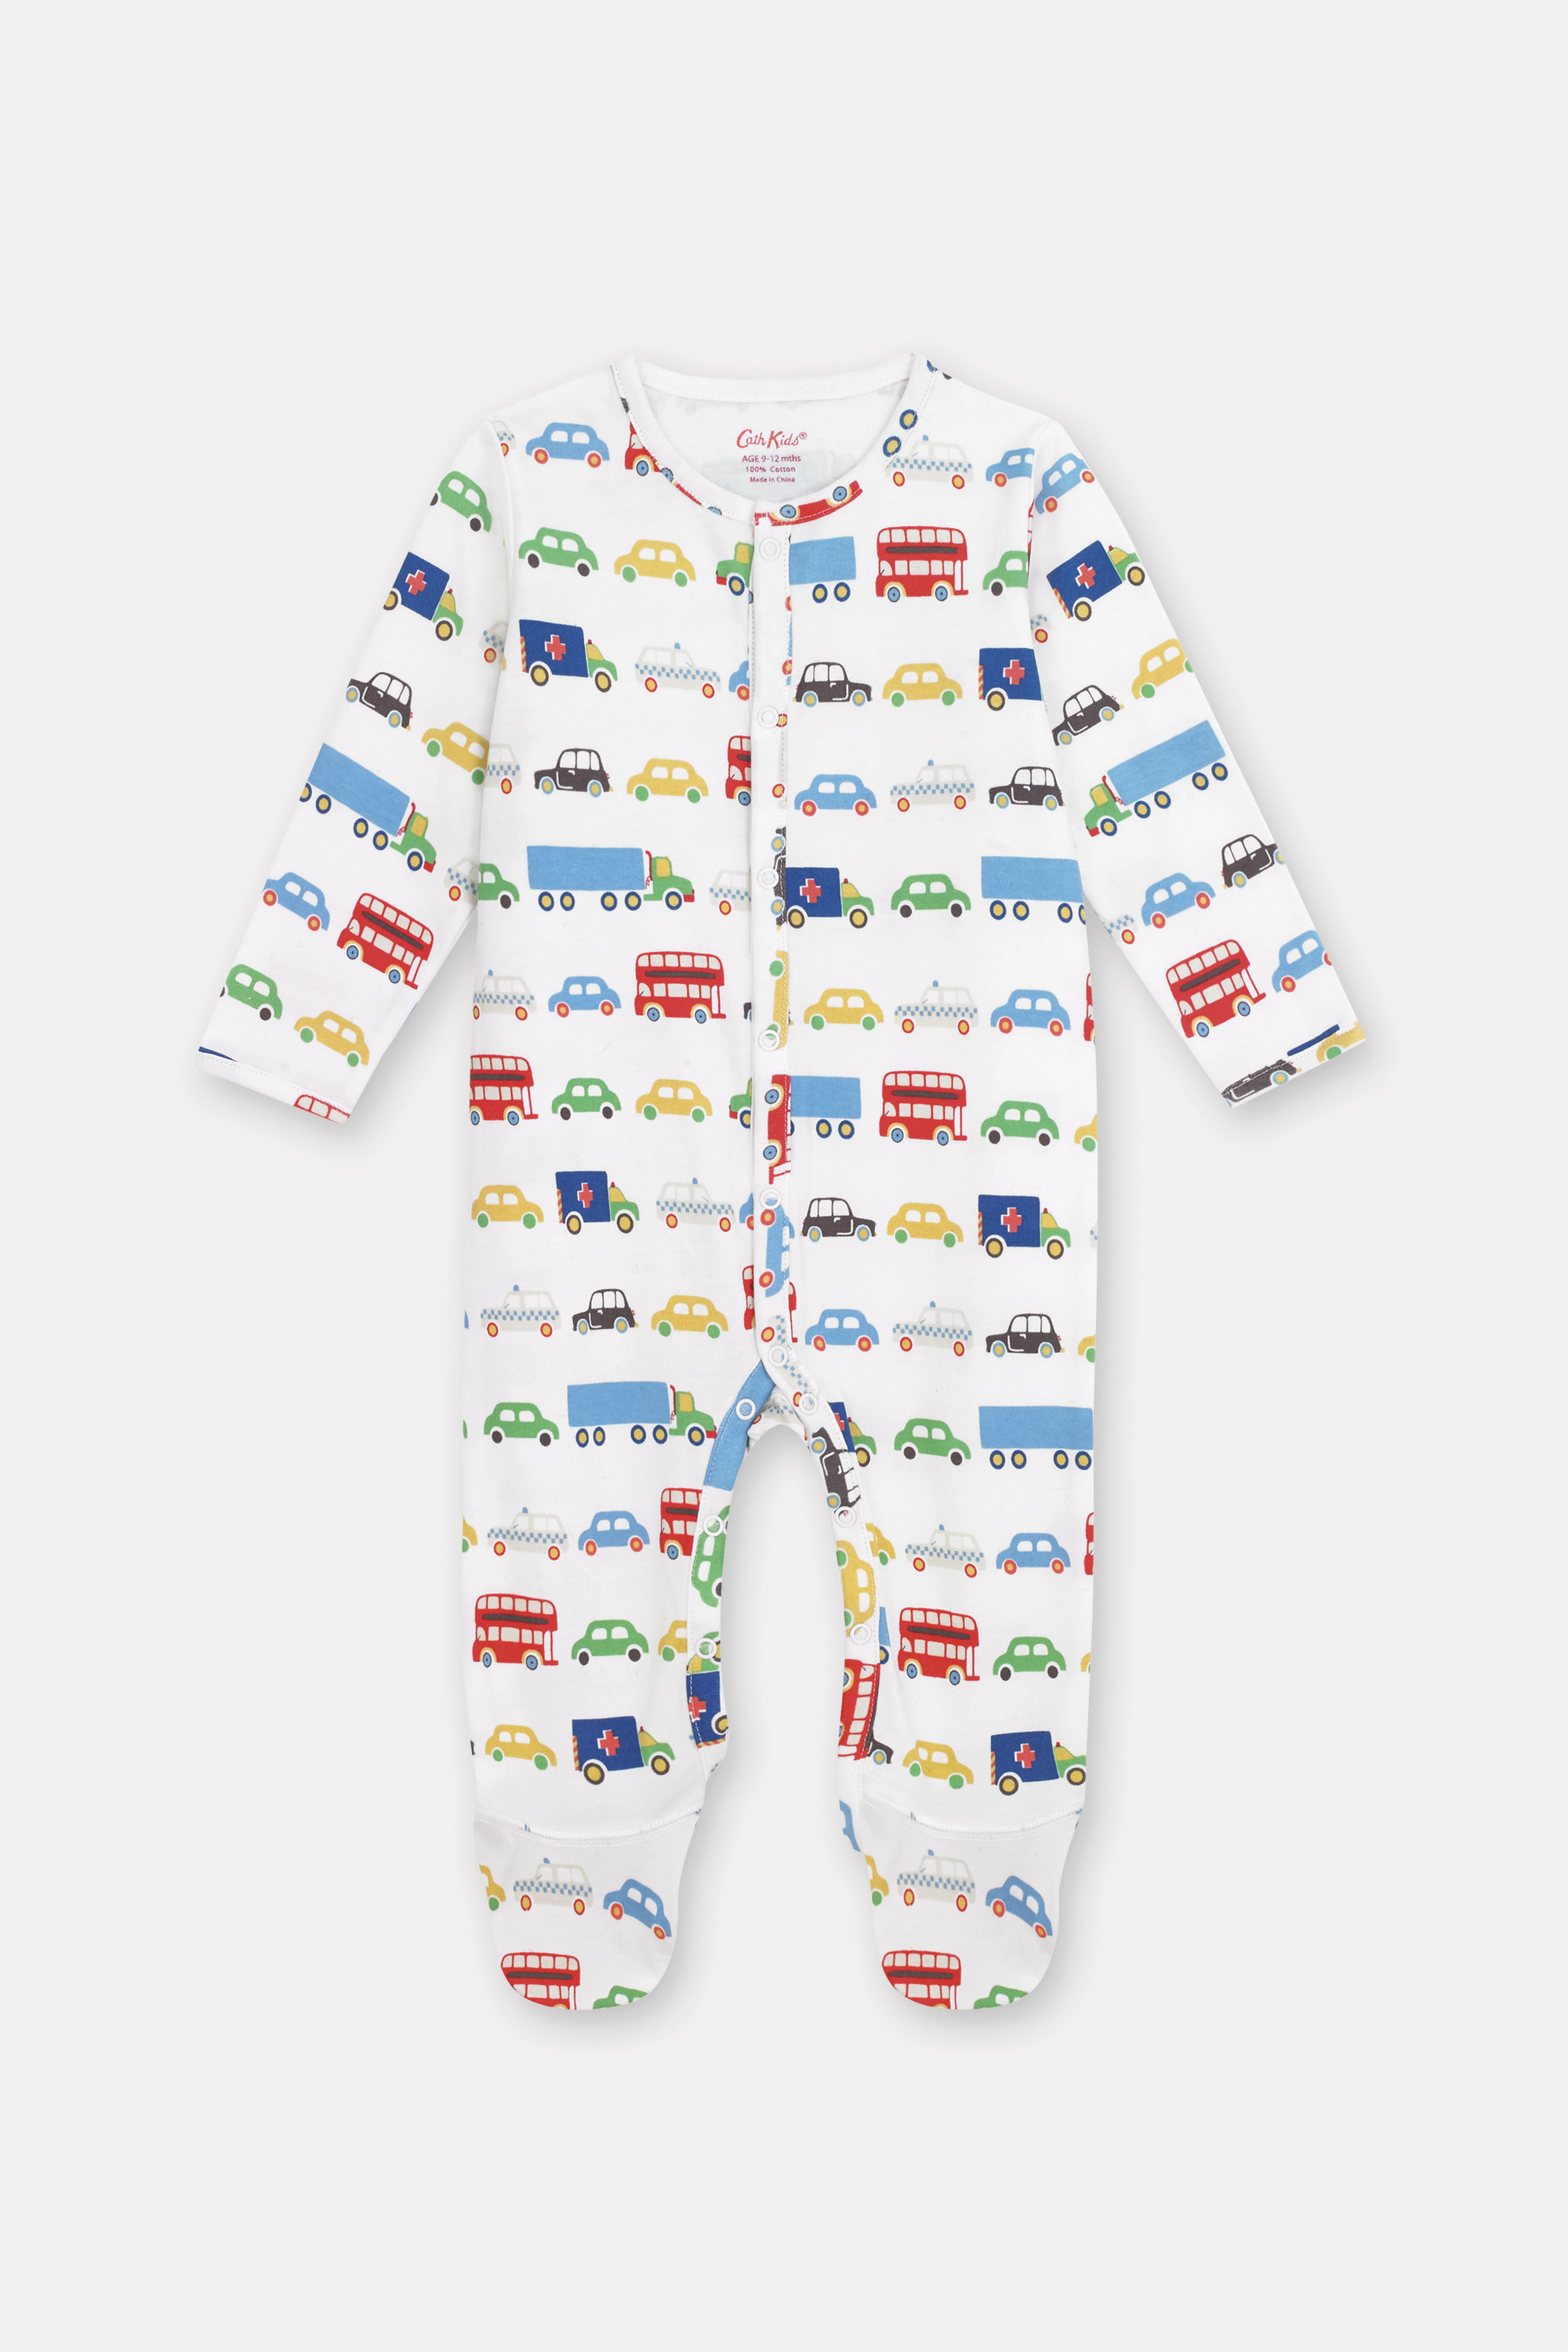 Cath Kidston Transport Sleepsuit in Oyster Shell, 0-3 Mo